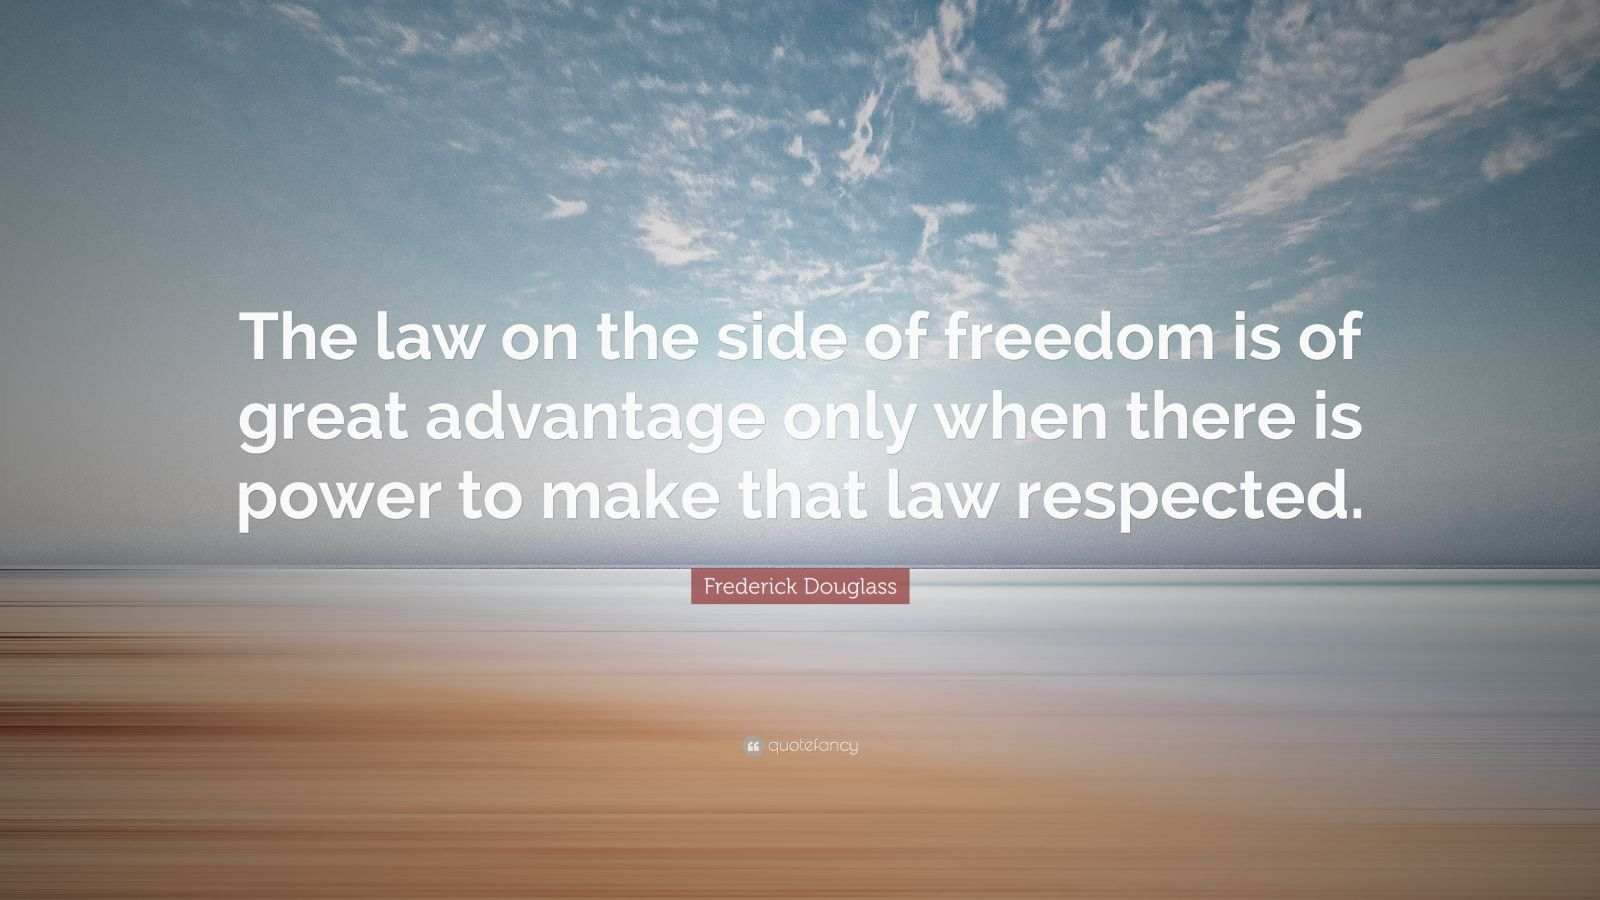 """Frederick Douglass Quote: """"The law on the side of freedom is of great advantage only when there is power to make that law respected."""""""